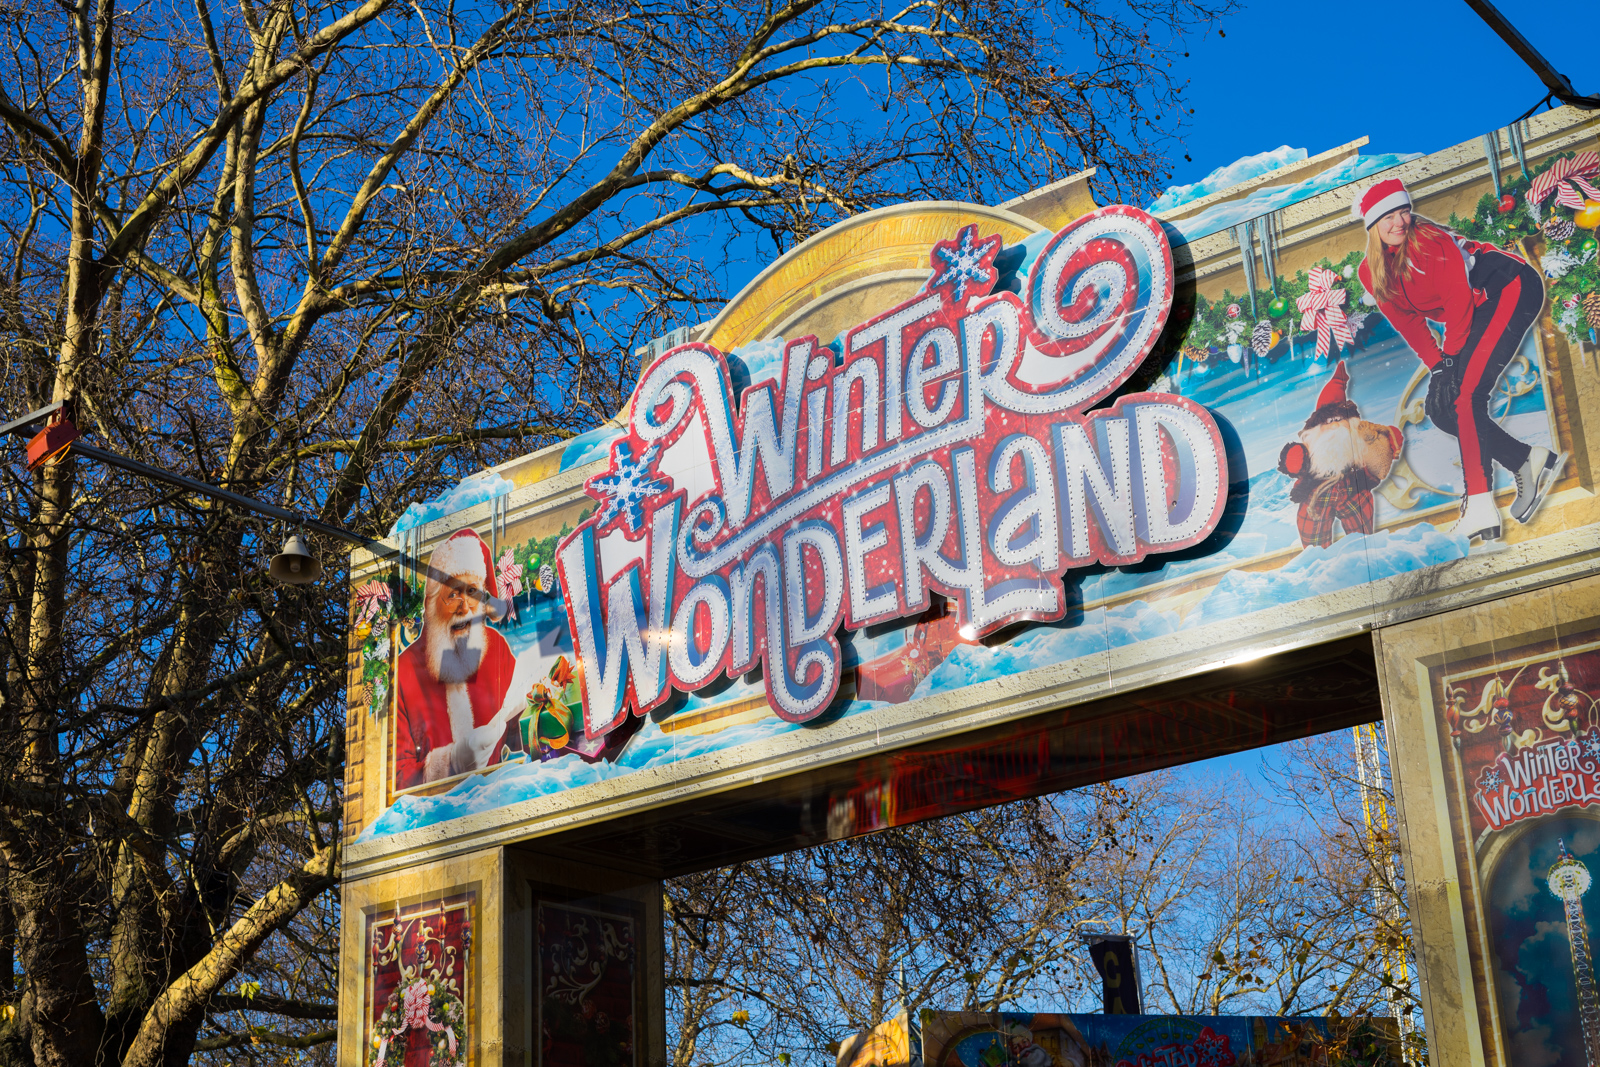 londres hyde park,hyde park, hyde park london, winter wonderland